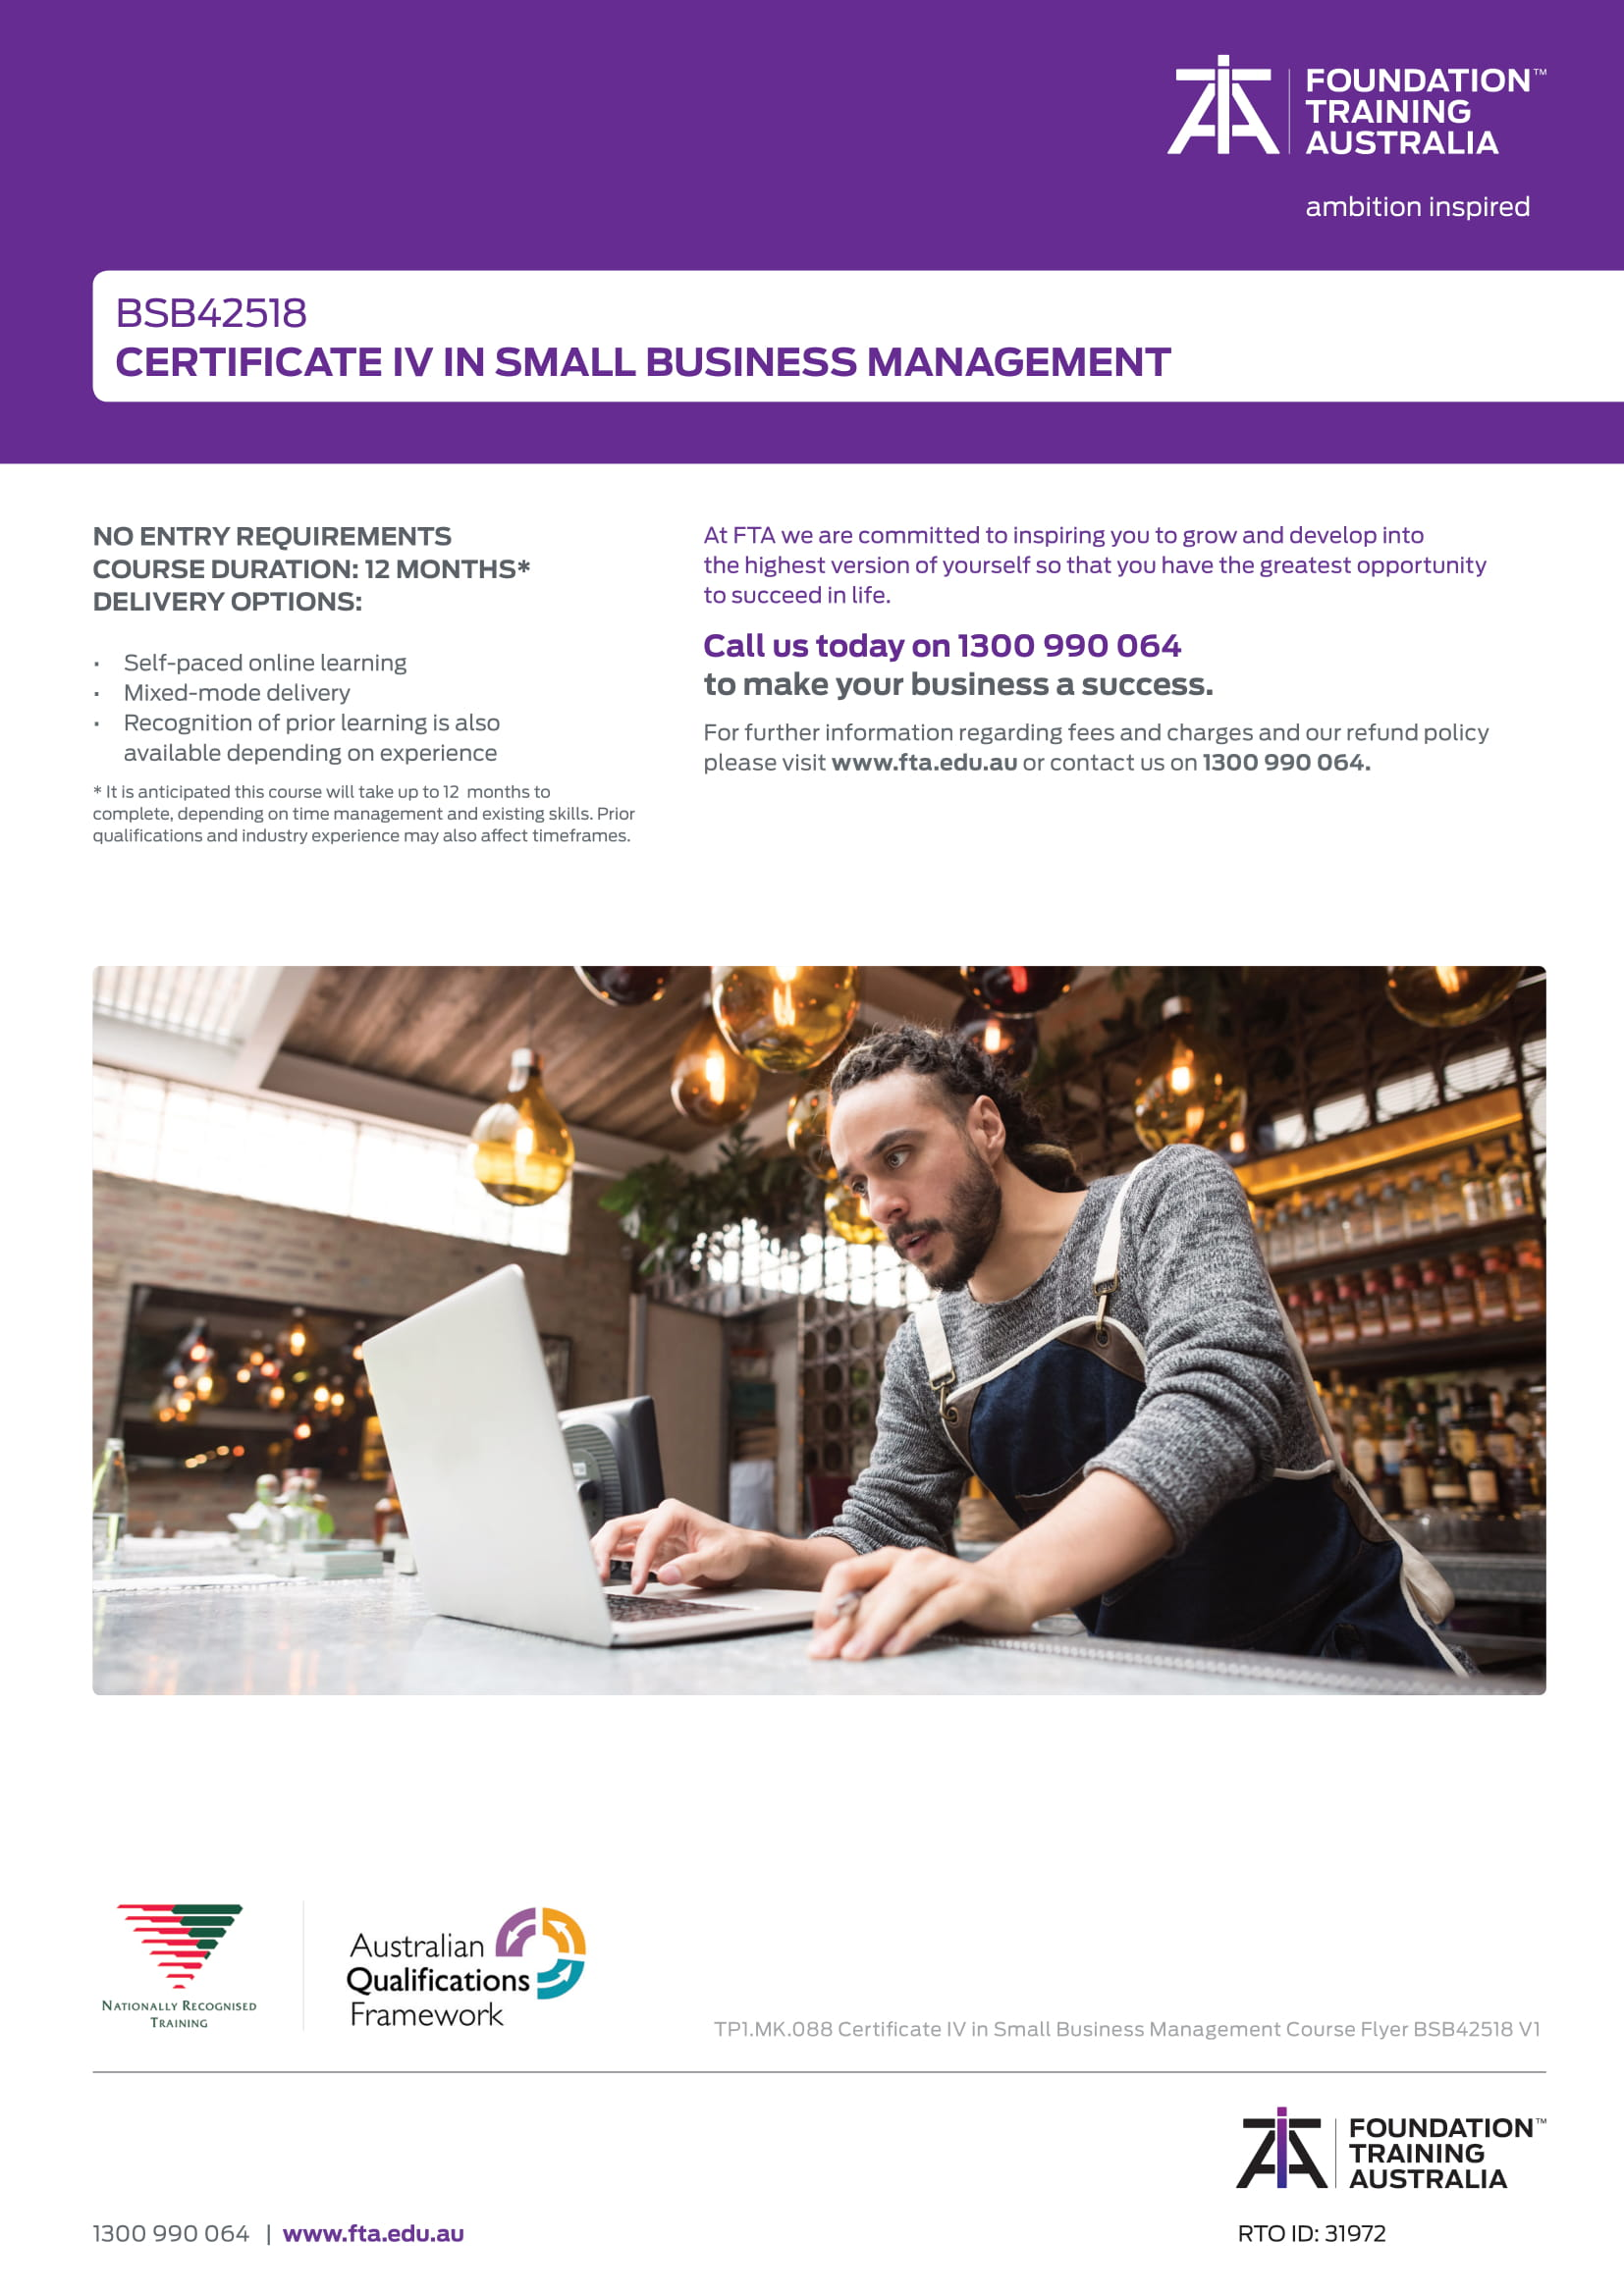 https://www.fta.edu.au/wp-content/uploads/2020/06/TP1.MK_.088-Certificate-IV-in-Small-Business-Management-Course-Flyer-BSB42518-V1-PRESS-2.jpg